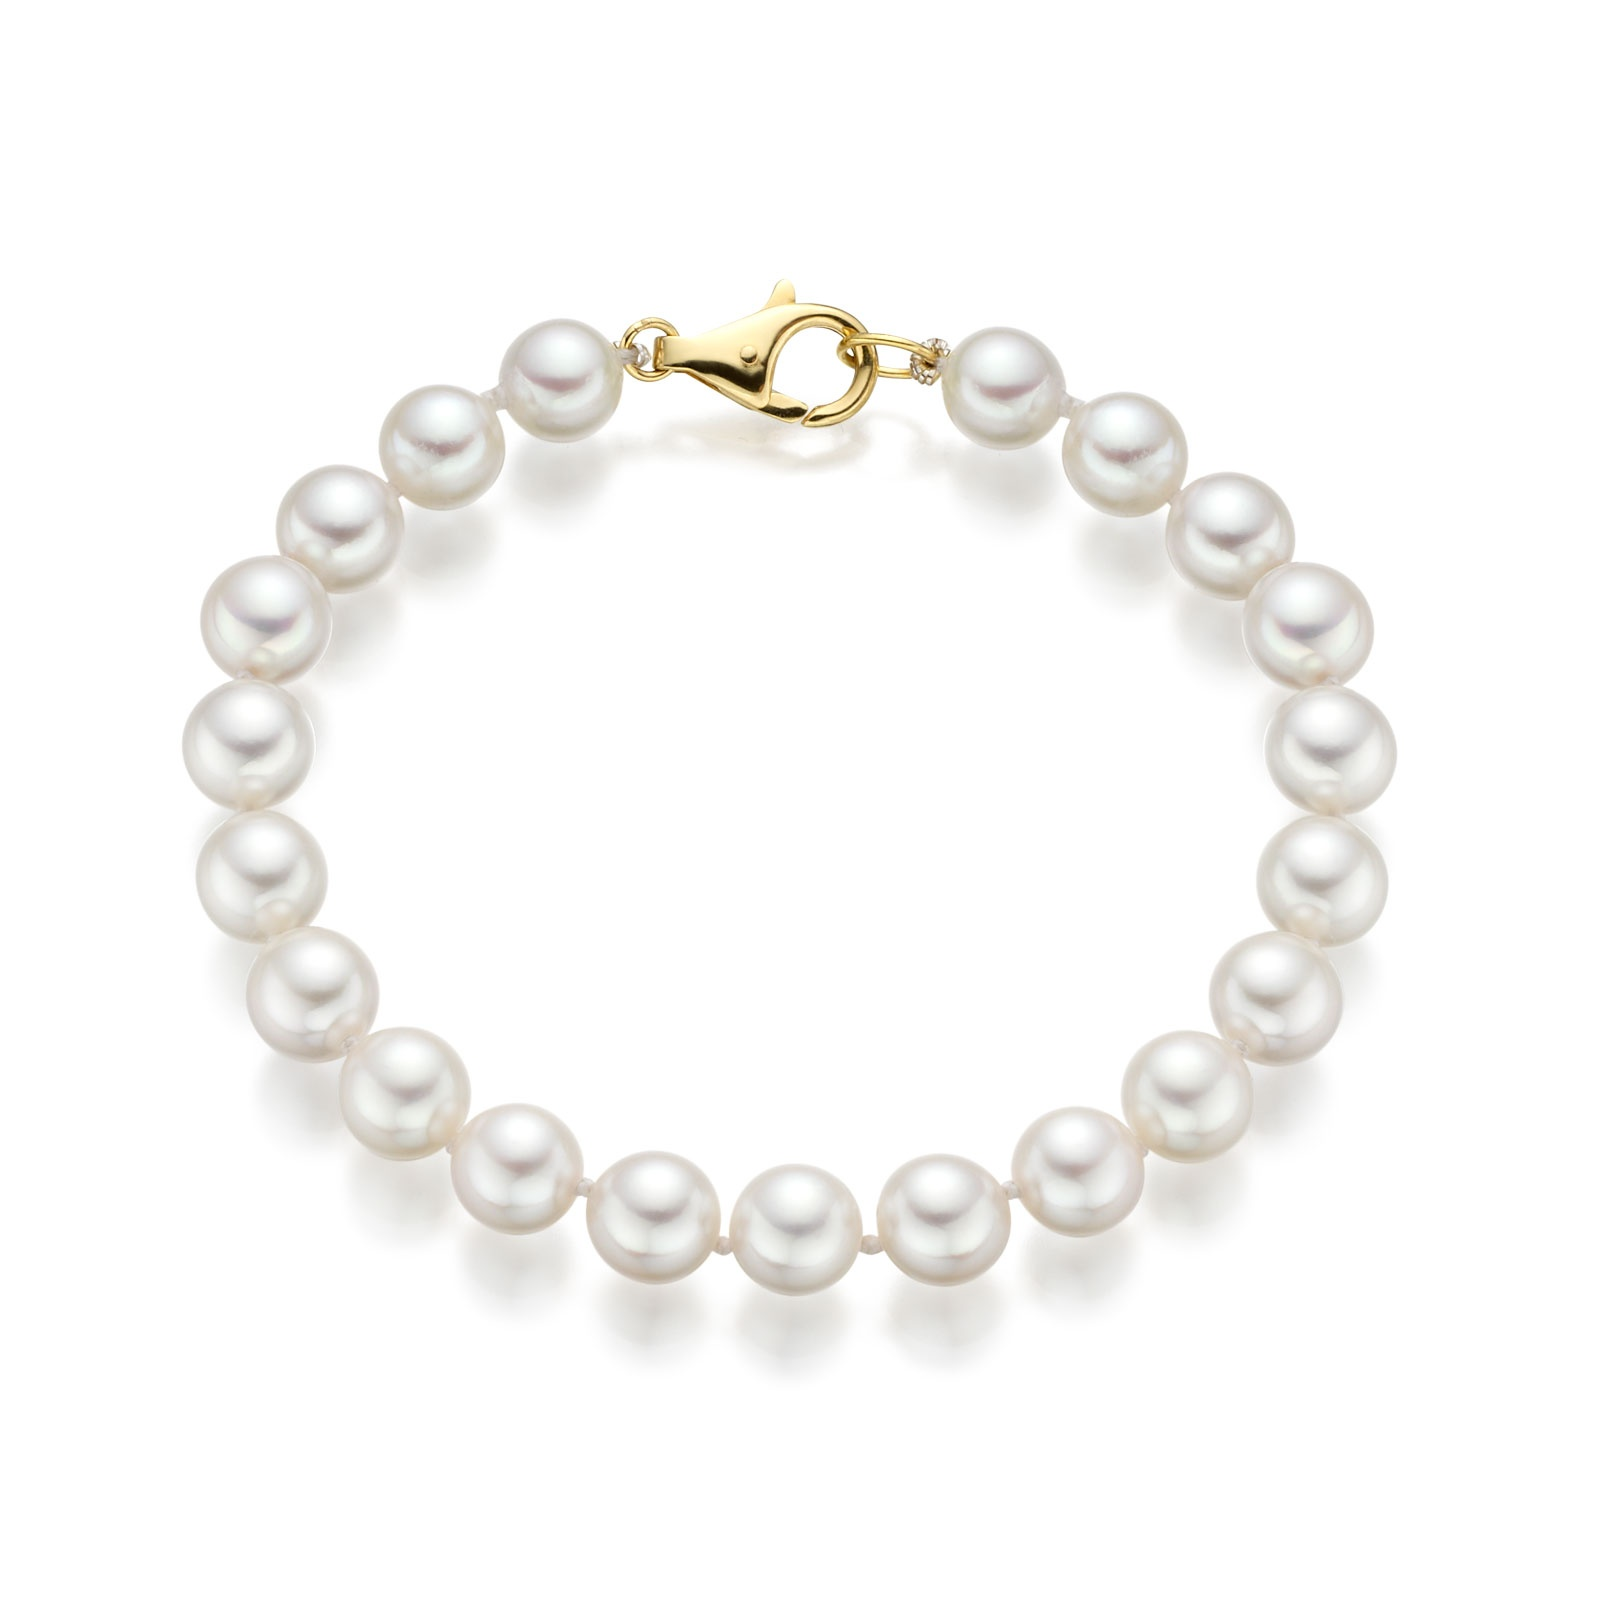 Classic White Japanese Akoya Pearl Bracelet with 18ct Gold-1